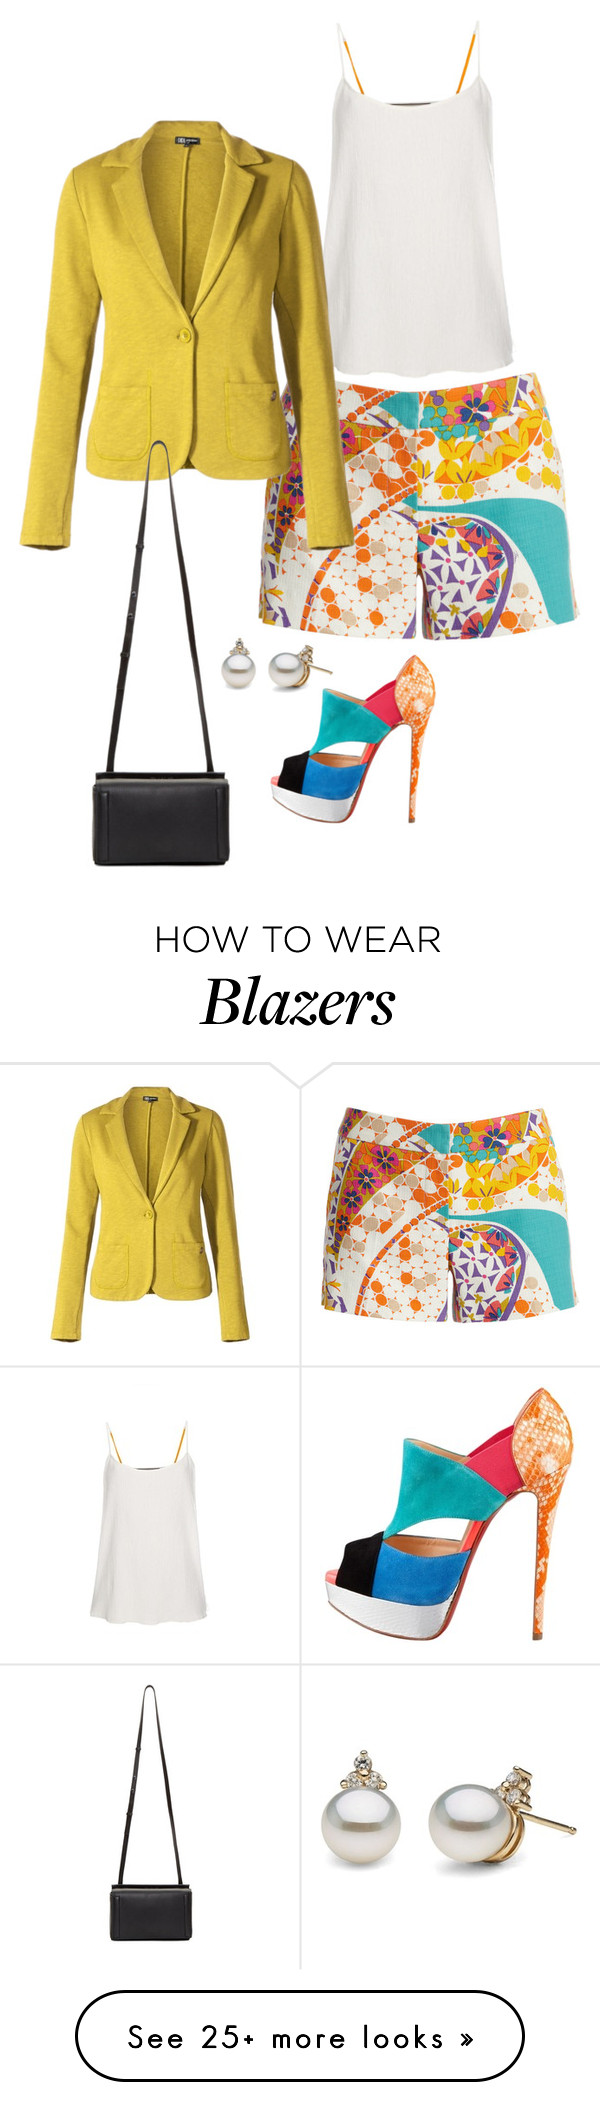 """""""Untitled #3781"""" by bbossboo on Polyvore featuring Trina Turk, Christian Louboutin, Paul Smith and rag & bone"""